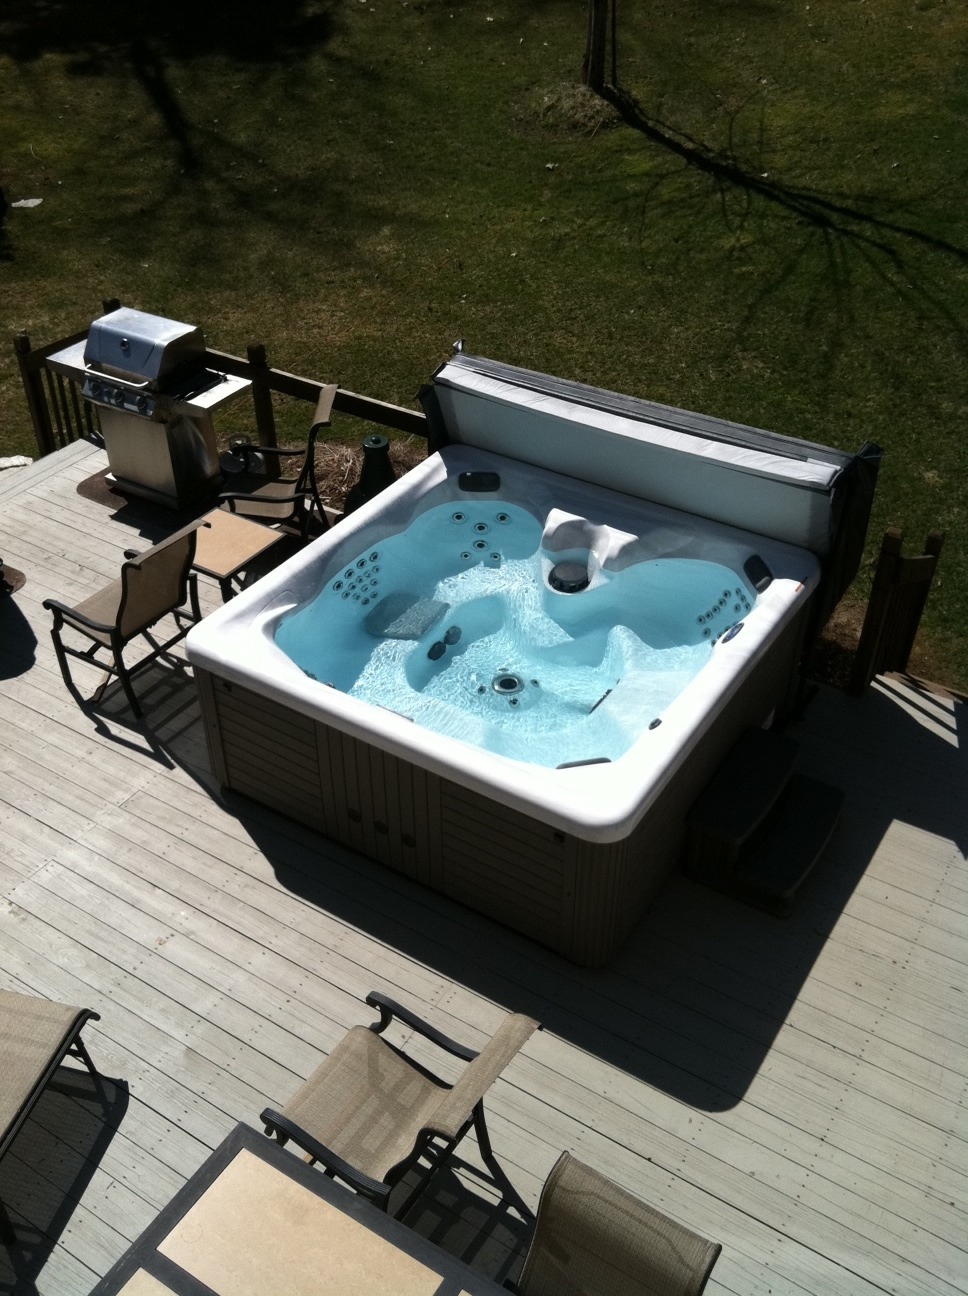 A hot tub next to the grill is perfect for the outdoor man cave